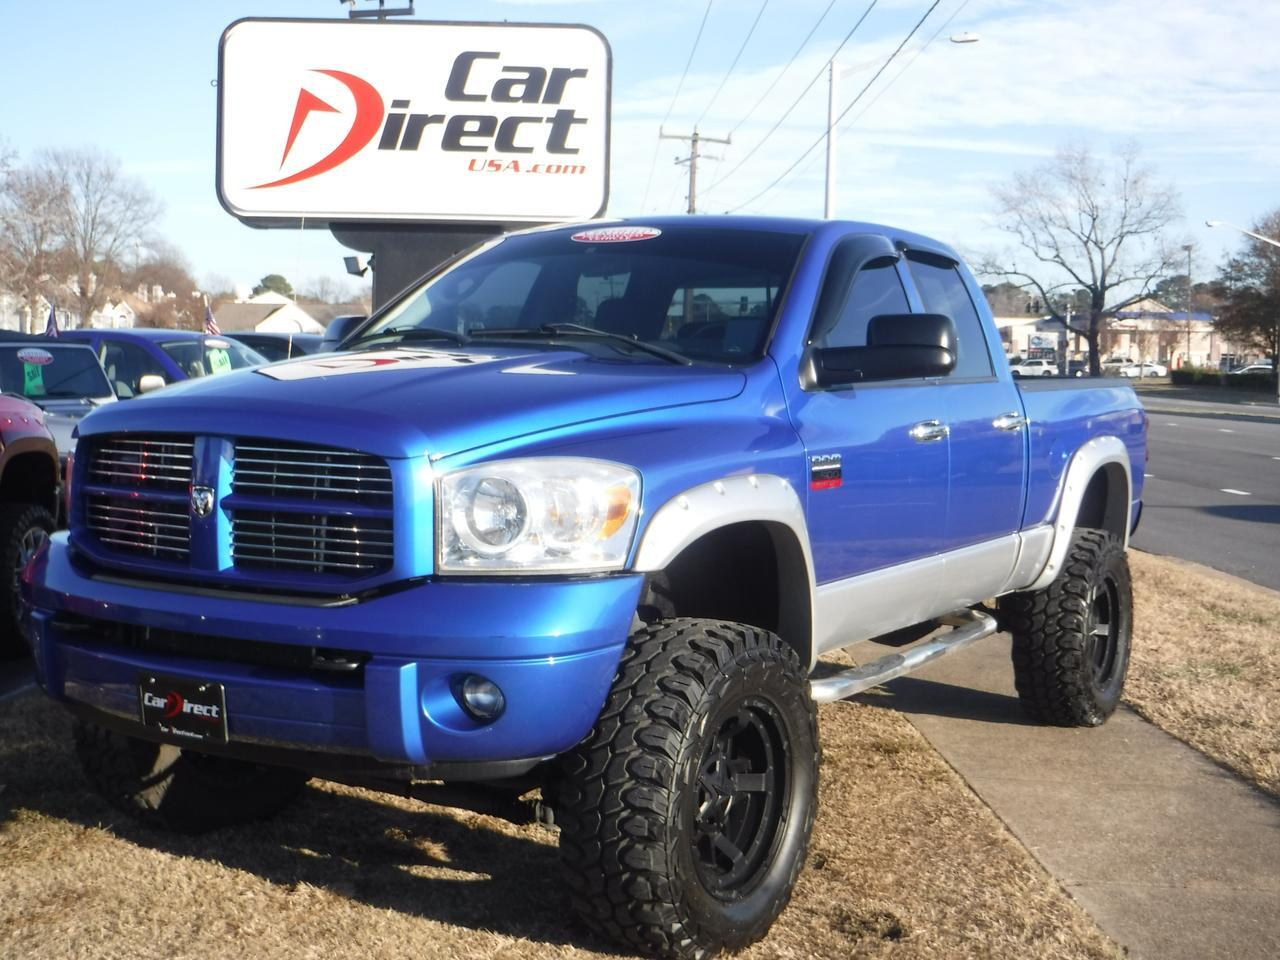 2008 dodge ram 2500hd quad cab sport 4x4 6 7l v6 turbo. Black Bedroom Furniture Sets. Home Design Ideas